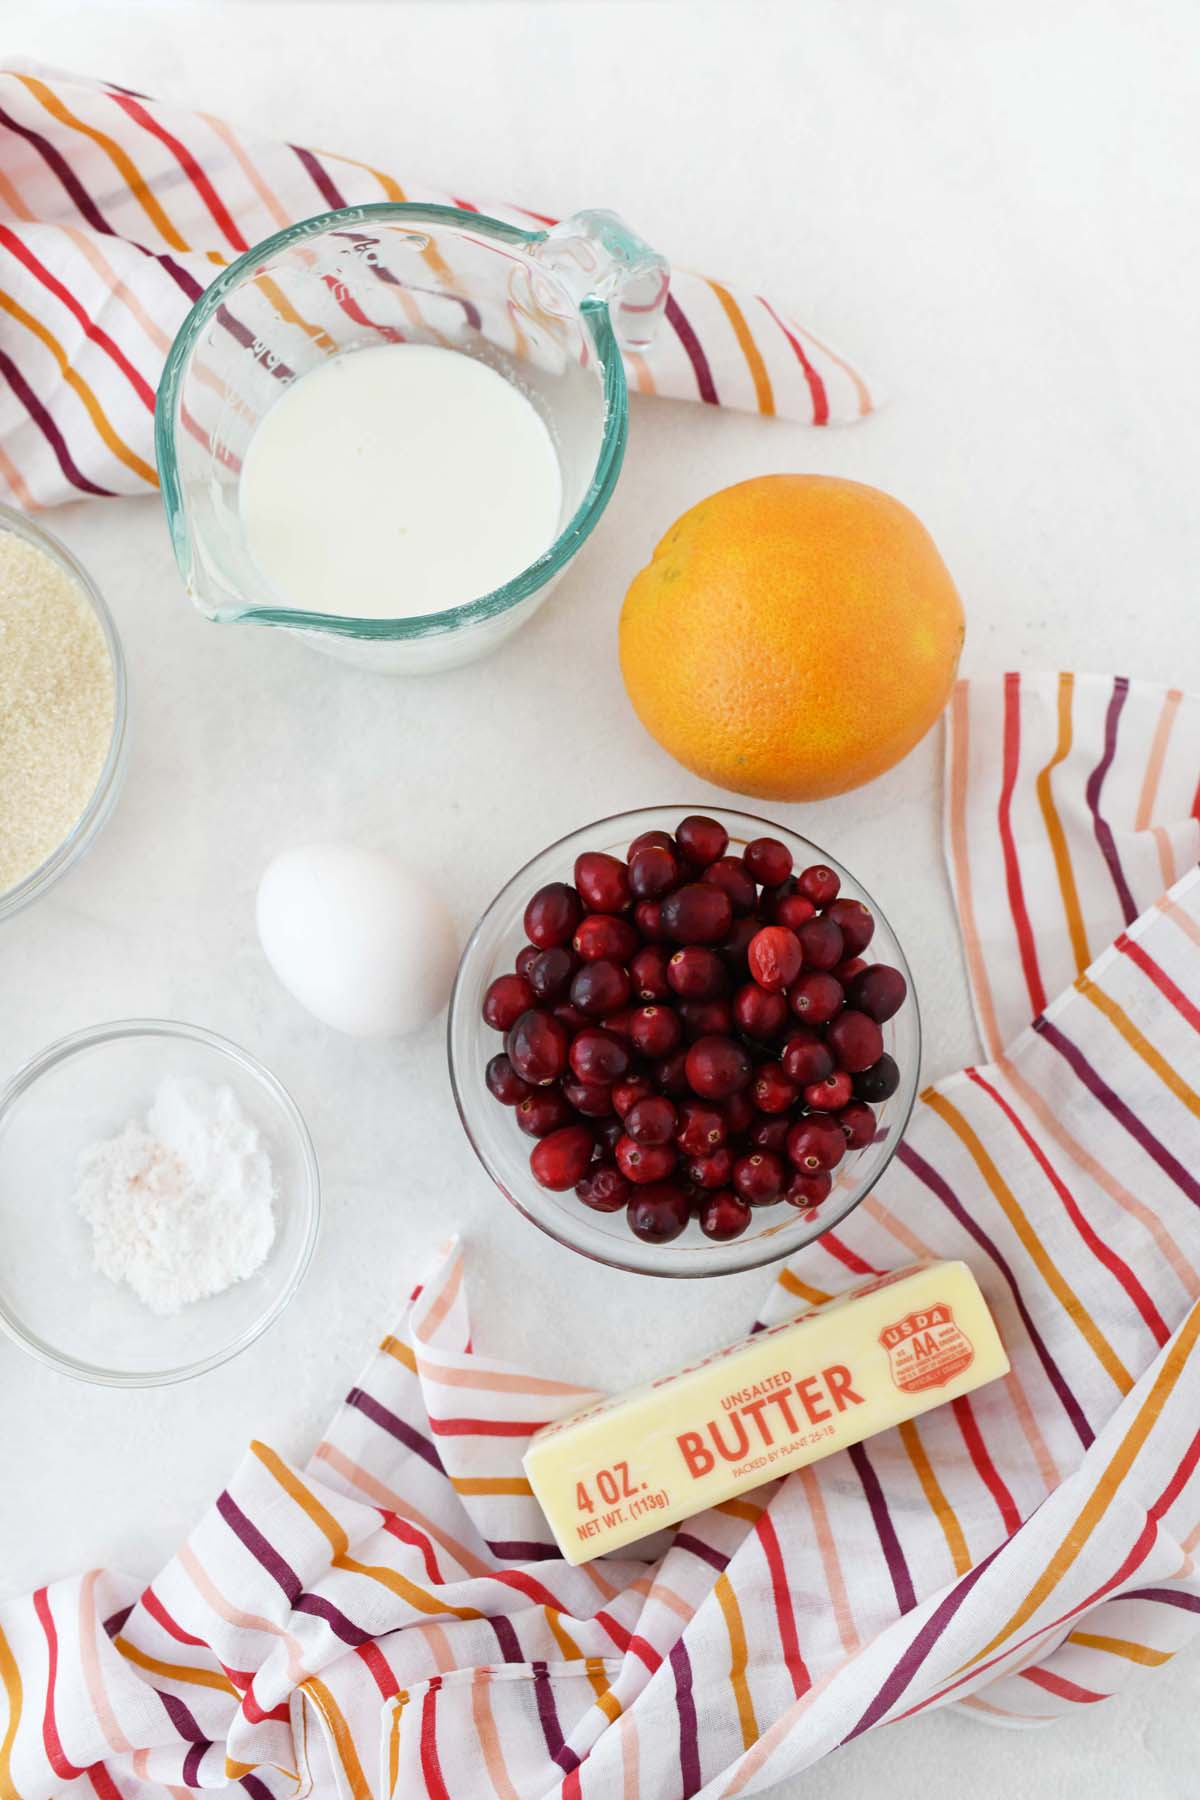 Orange cranberry muffin ingredients on a white table with a colorful striped napkin.